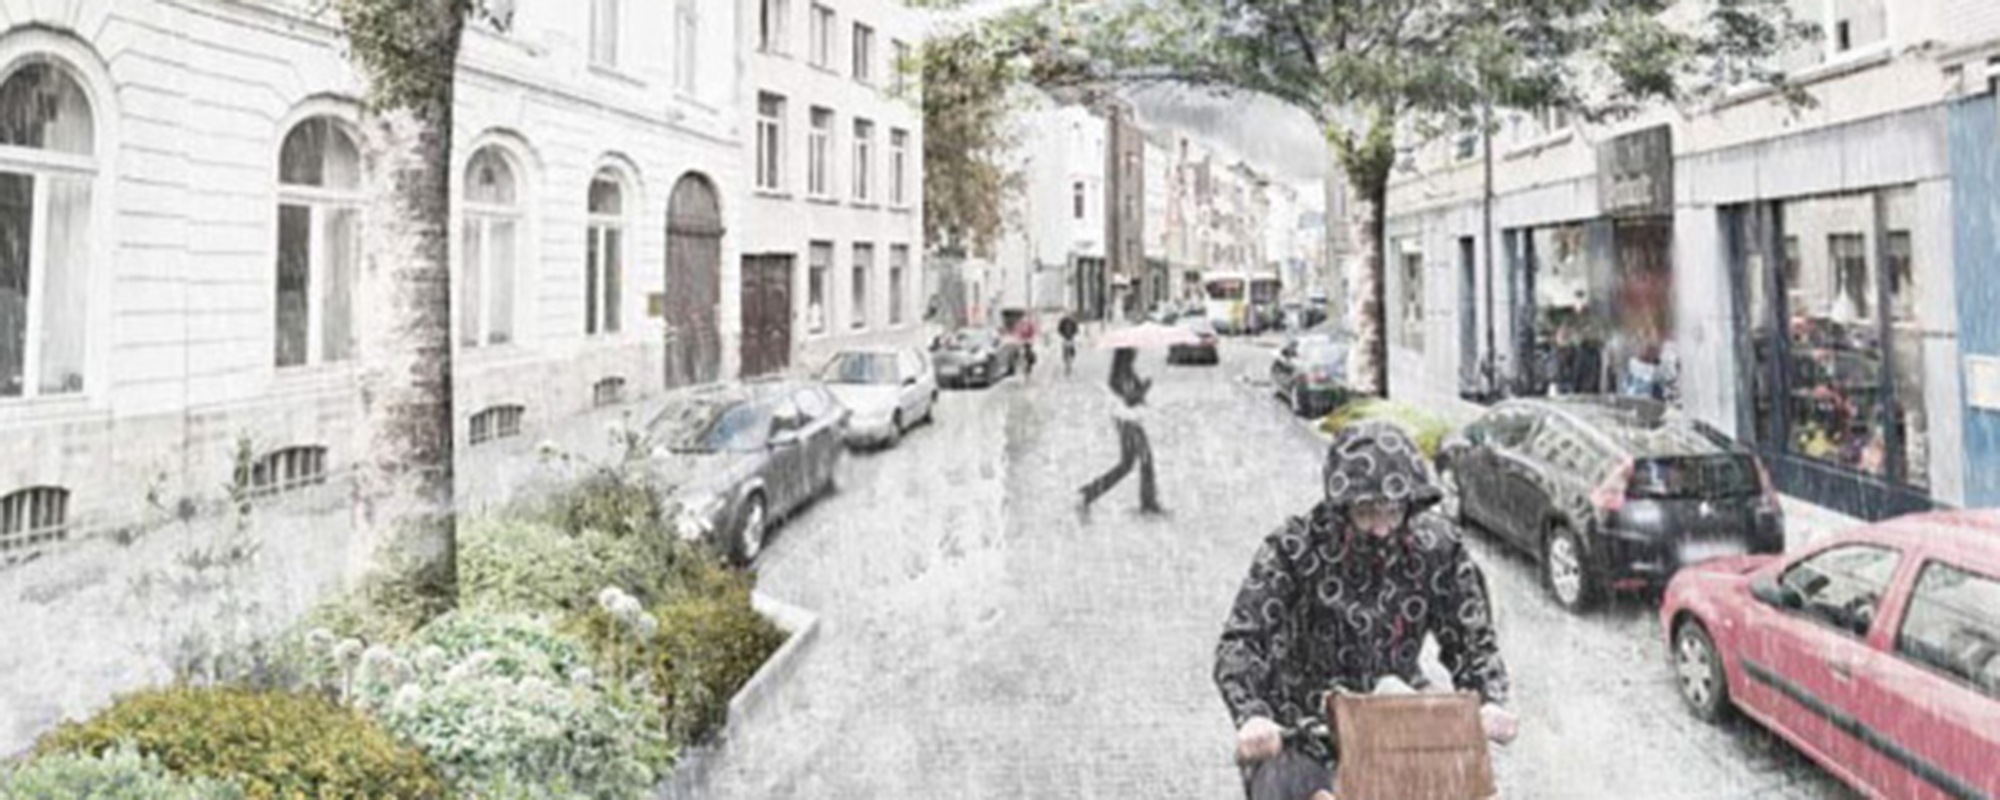 There are plans to 'depave' streets in Ghent to create a 'sponge city'